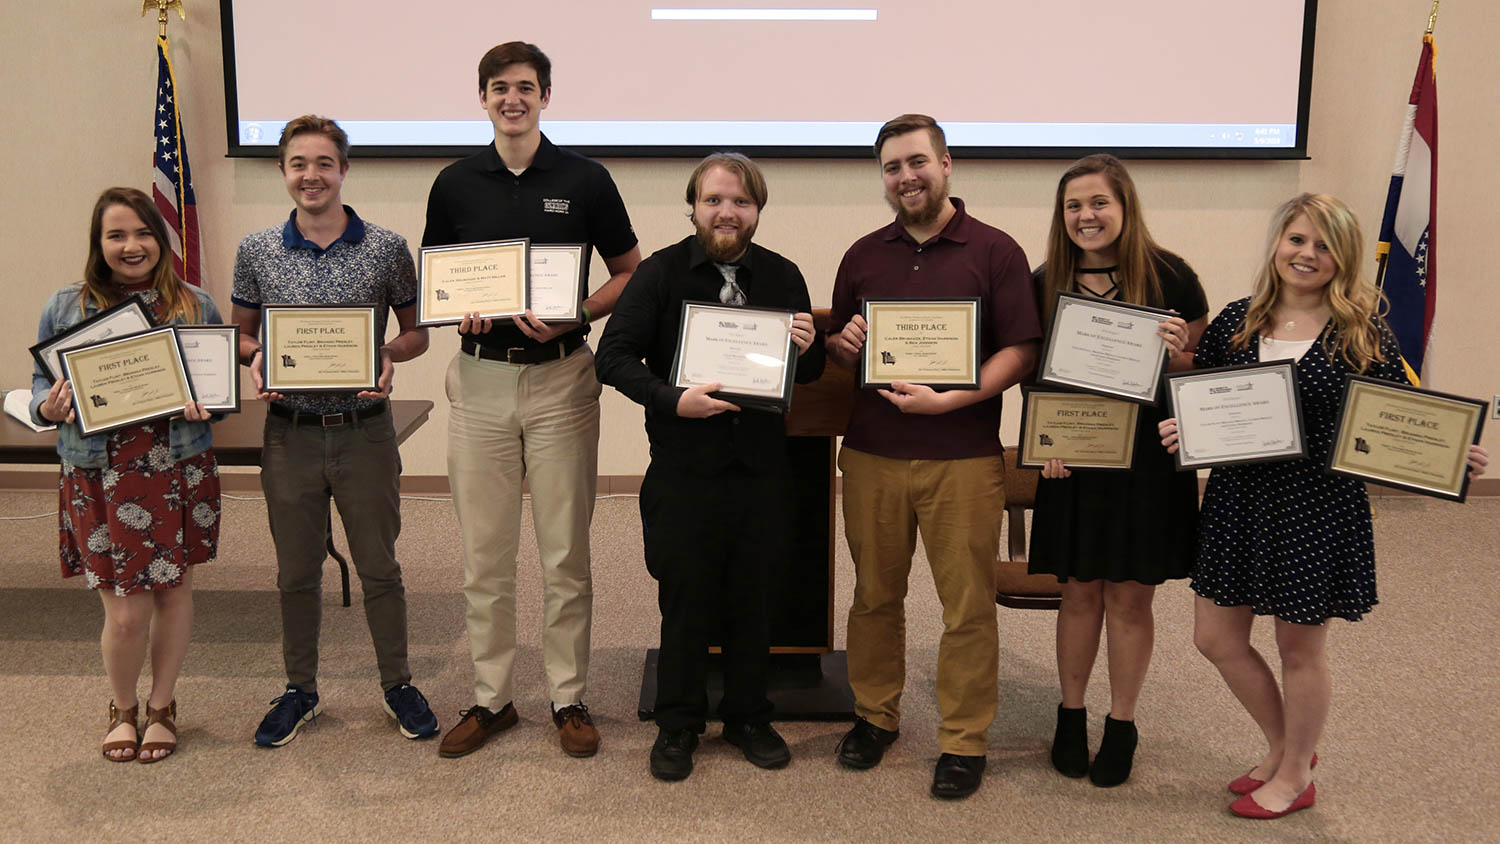 180510 CofO Student The Point Awards Photo 1time NOP - College of the Ozarks student newscast awarded by Missouri Broadcast Educators Association and Society of Professional Journalists